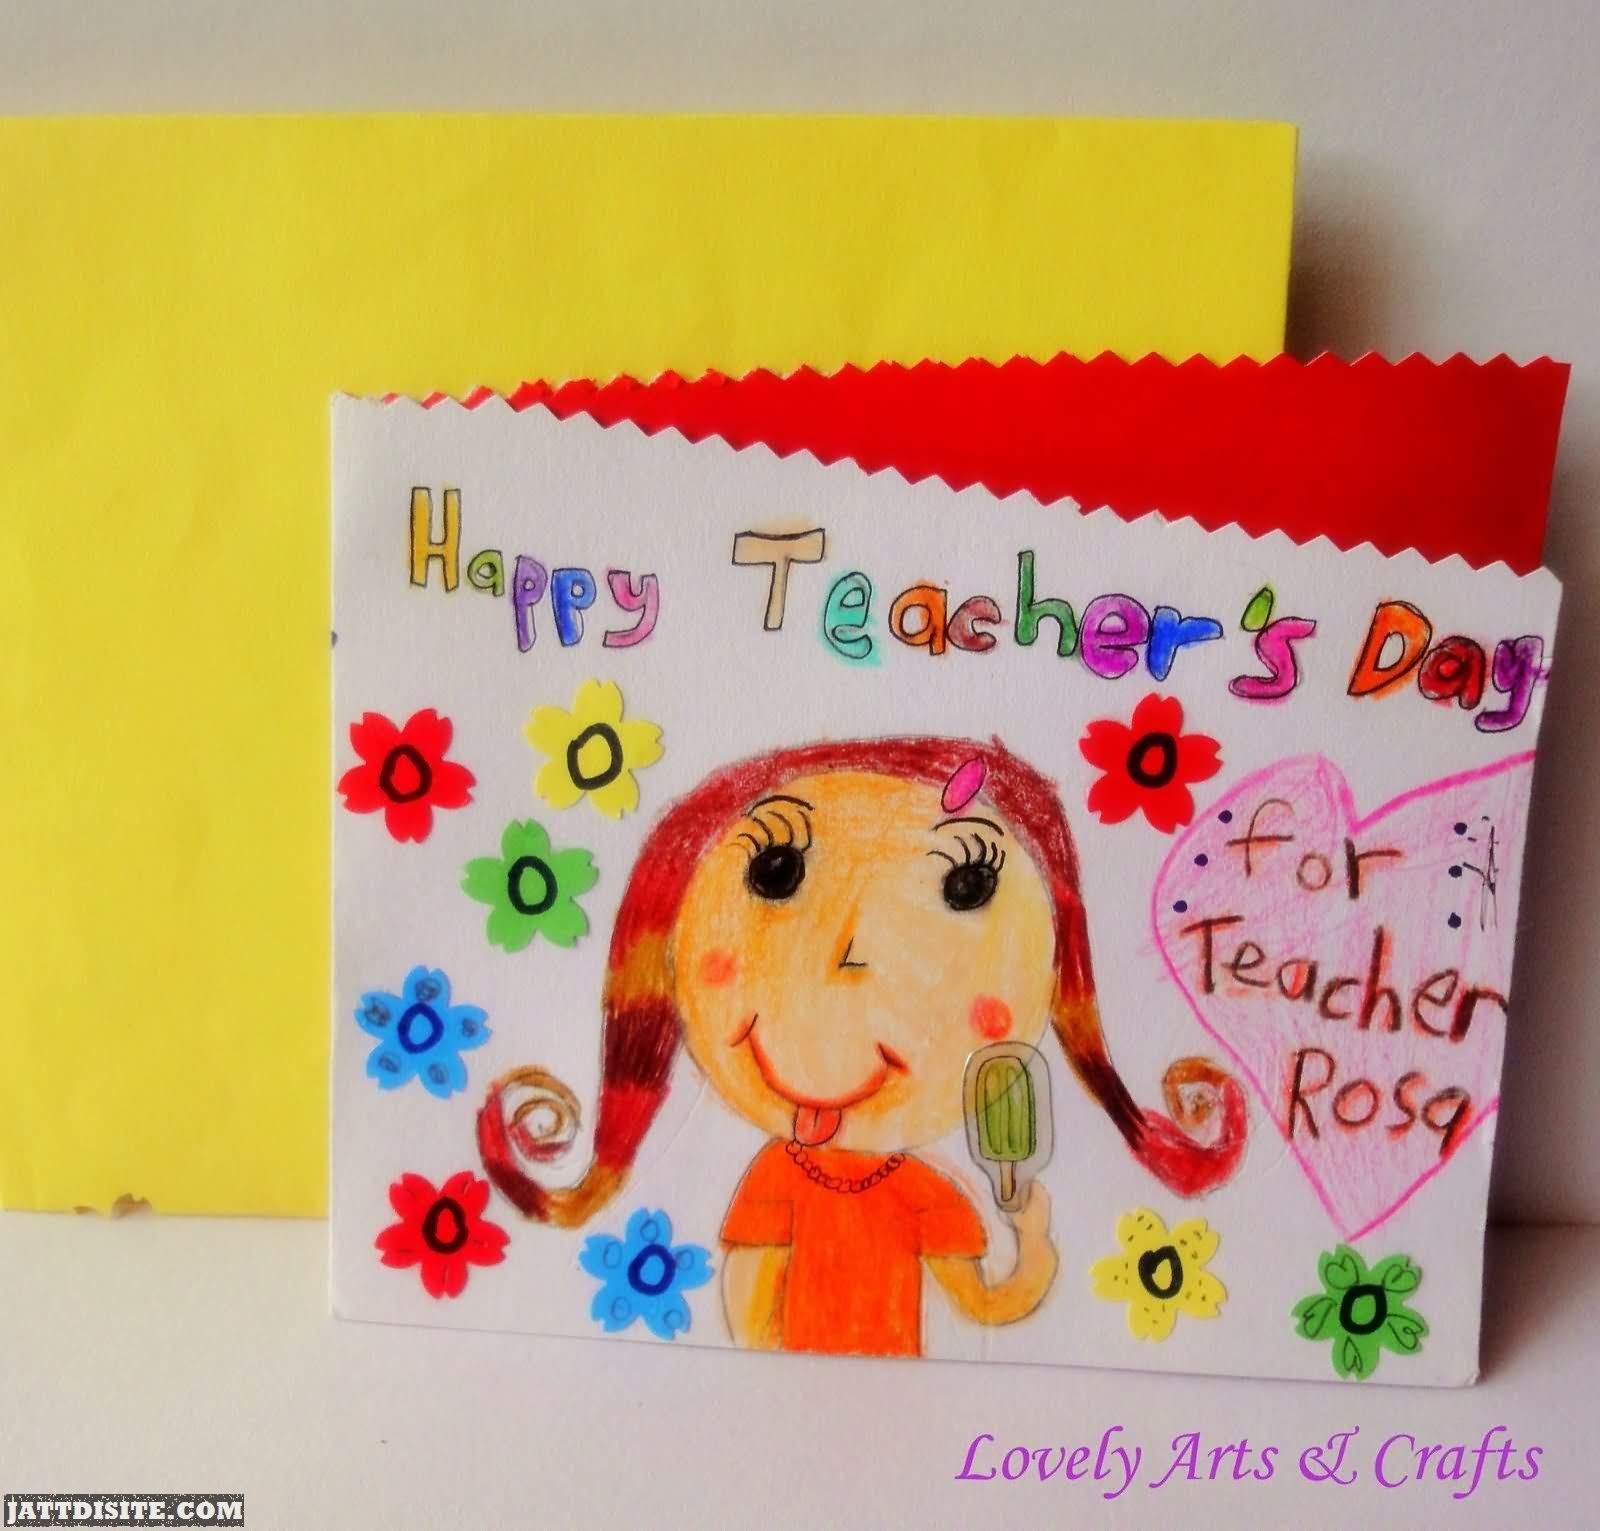 50 beautiful teachers day greeting card pictures and images happy teachers day hand made greeting card kristyandbryce Image collections